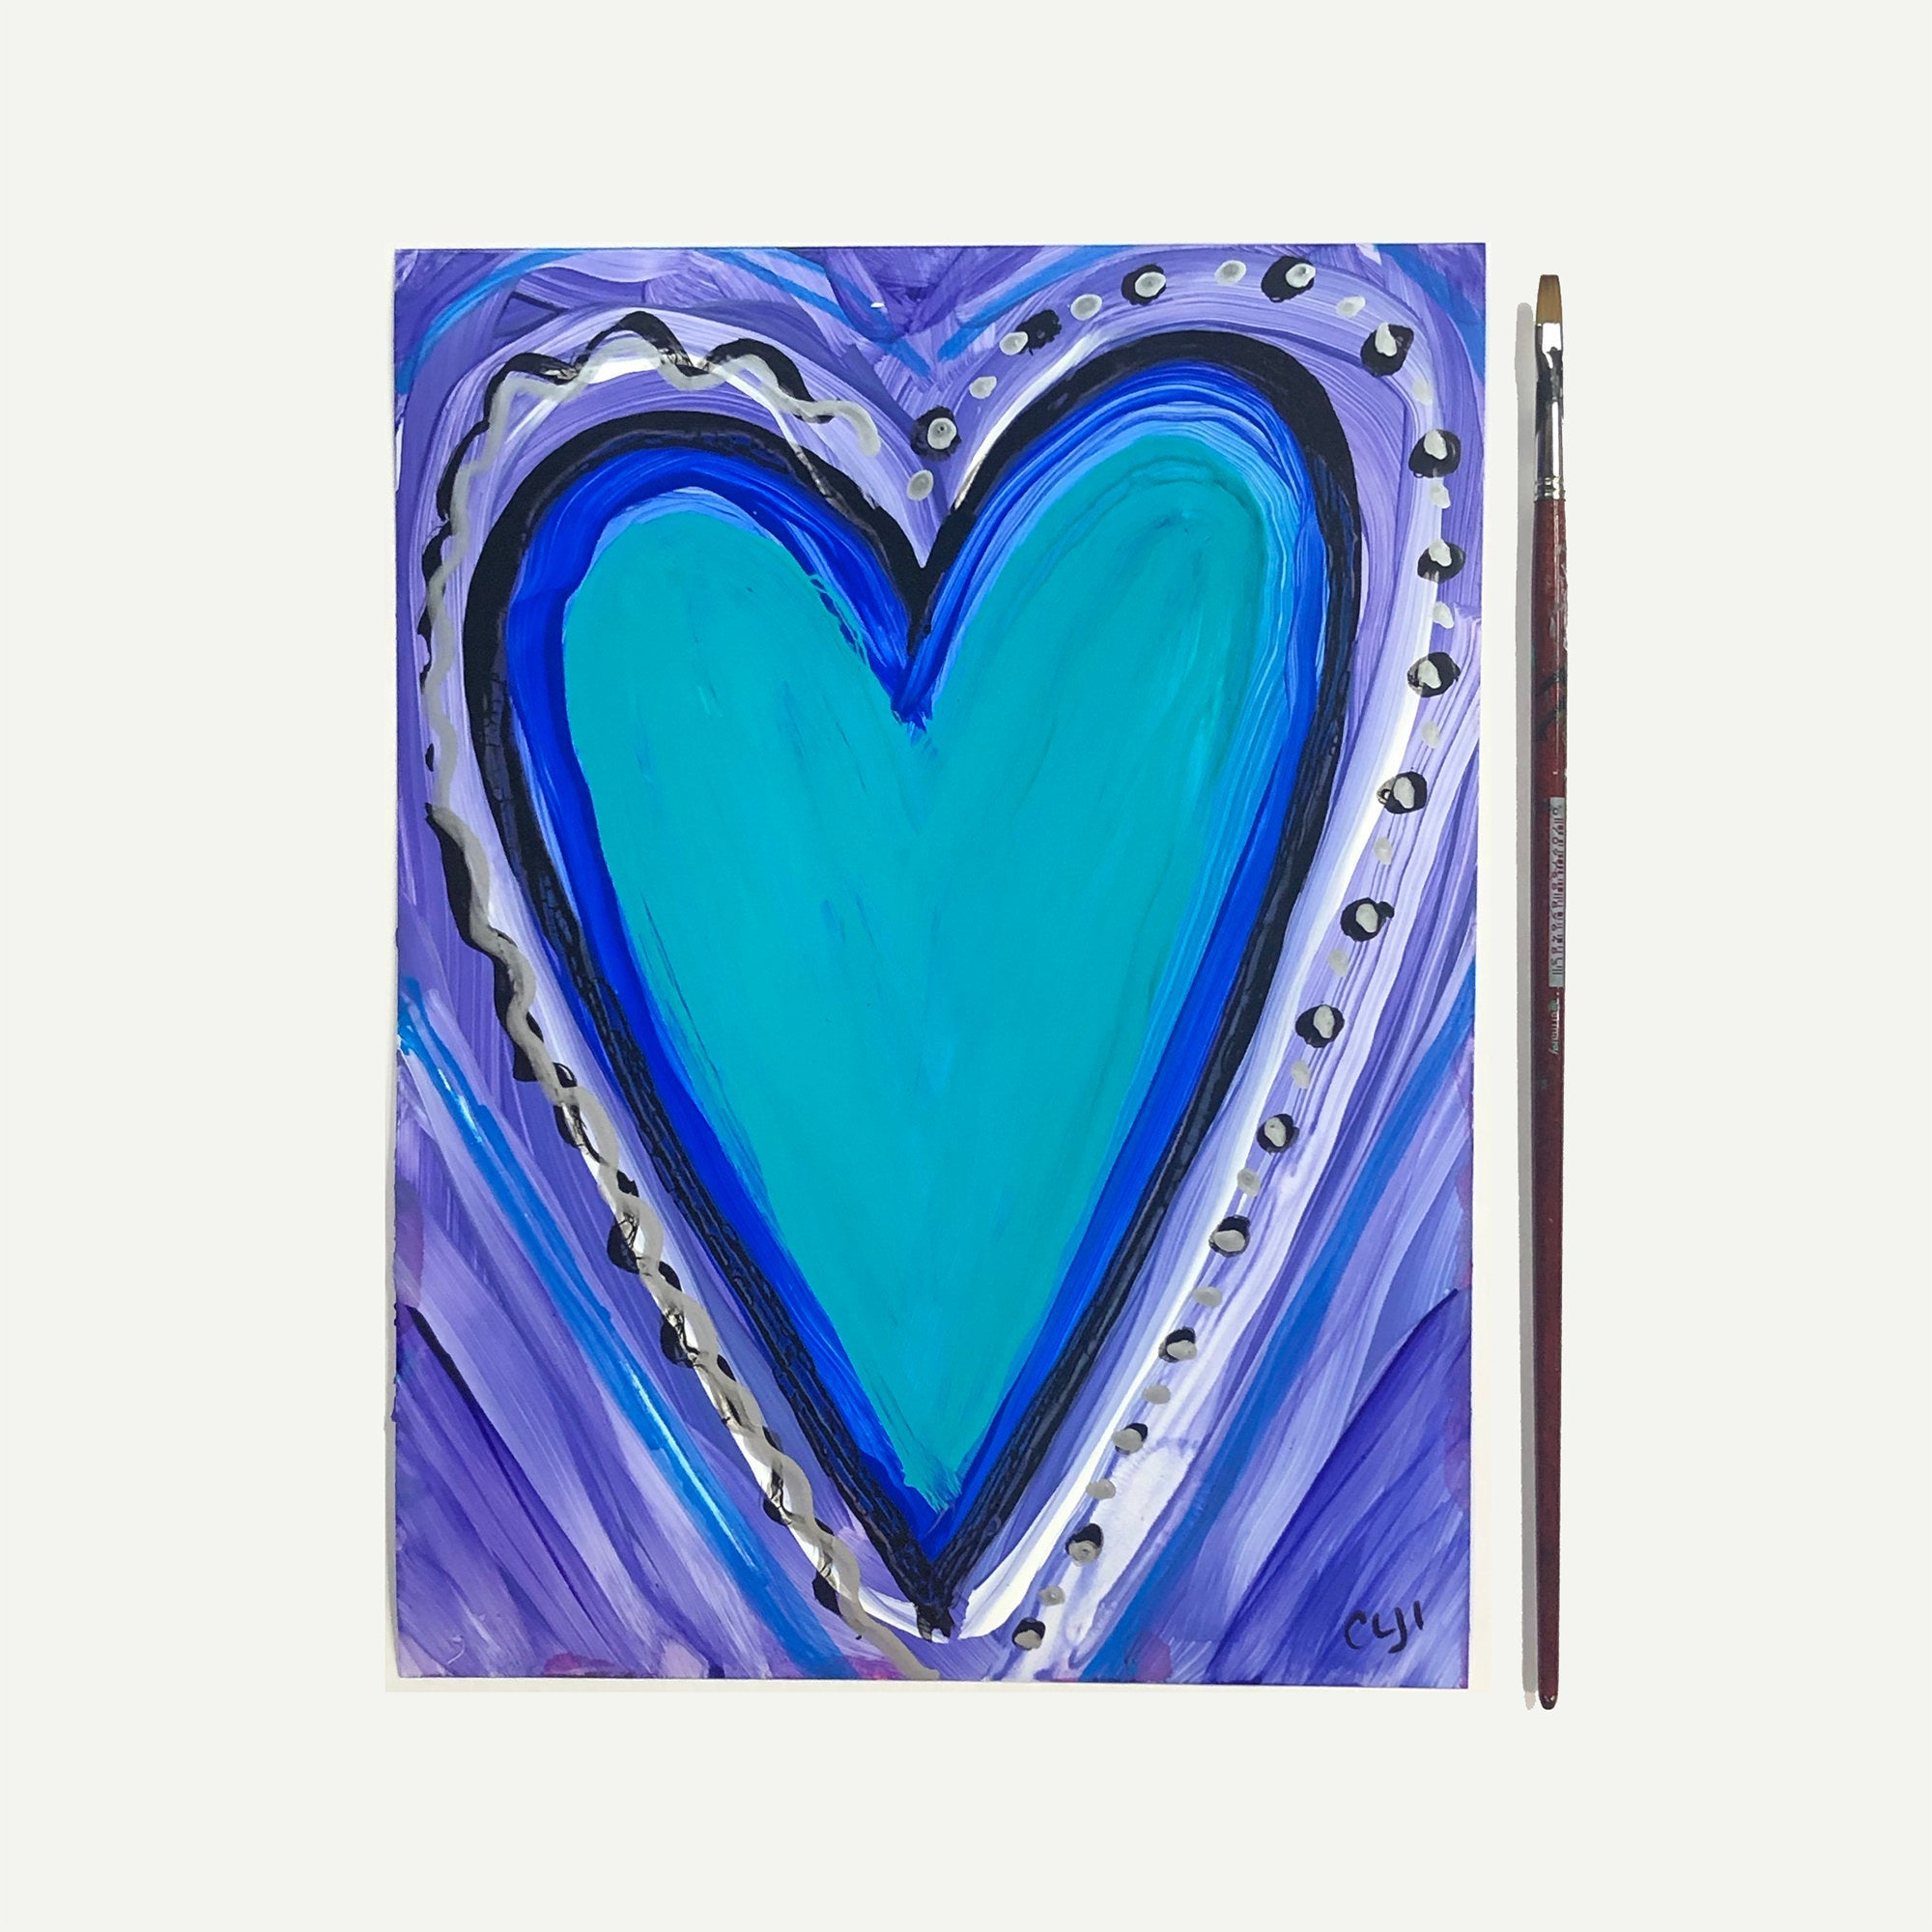 Whimsical Blue Heart Art on Paper - Original Heart Painting on Yupo - 9x12 inches - Unframed - By Claudine Intner